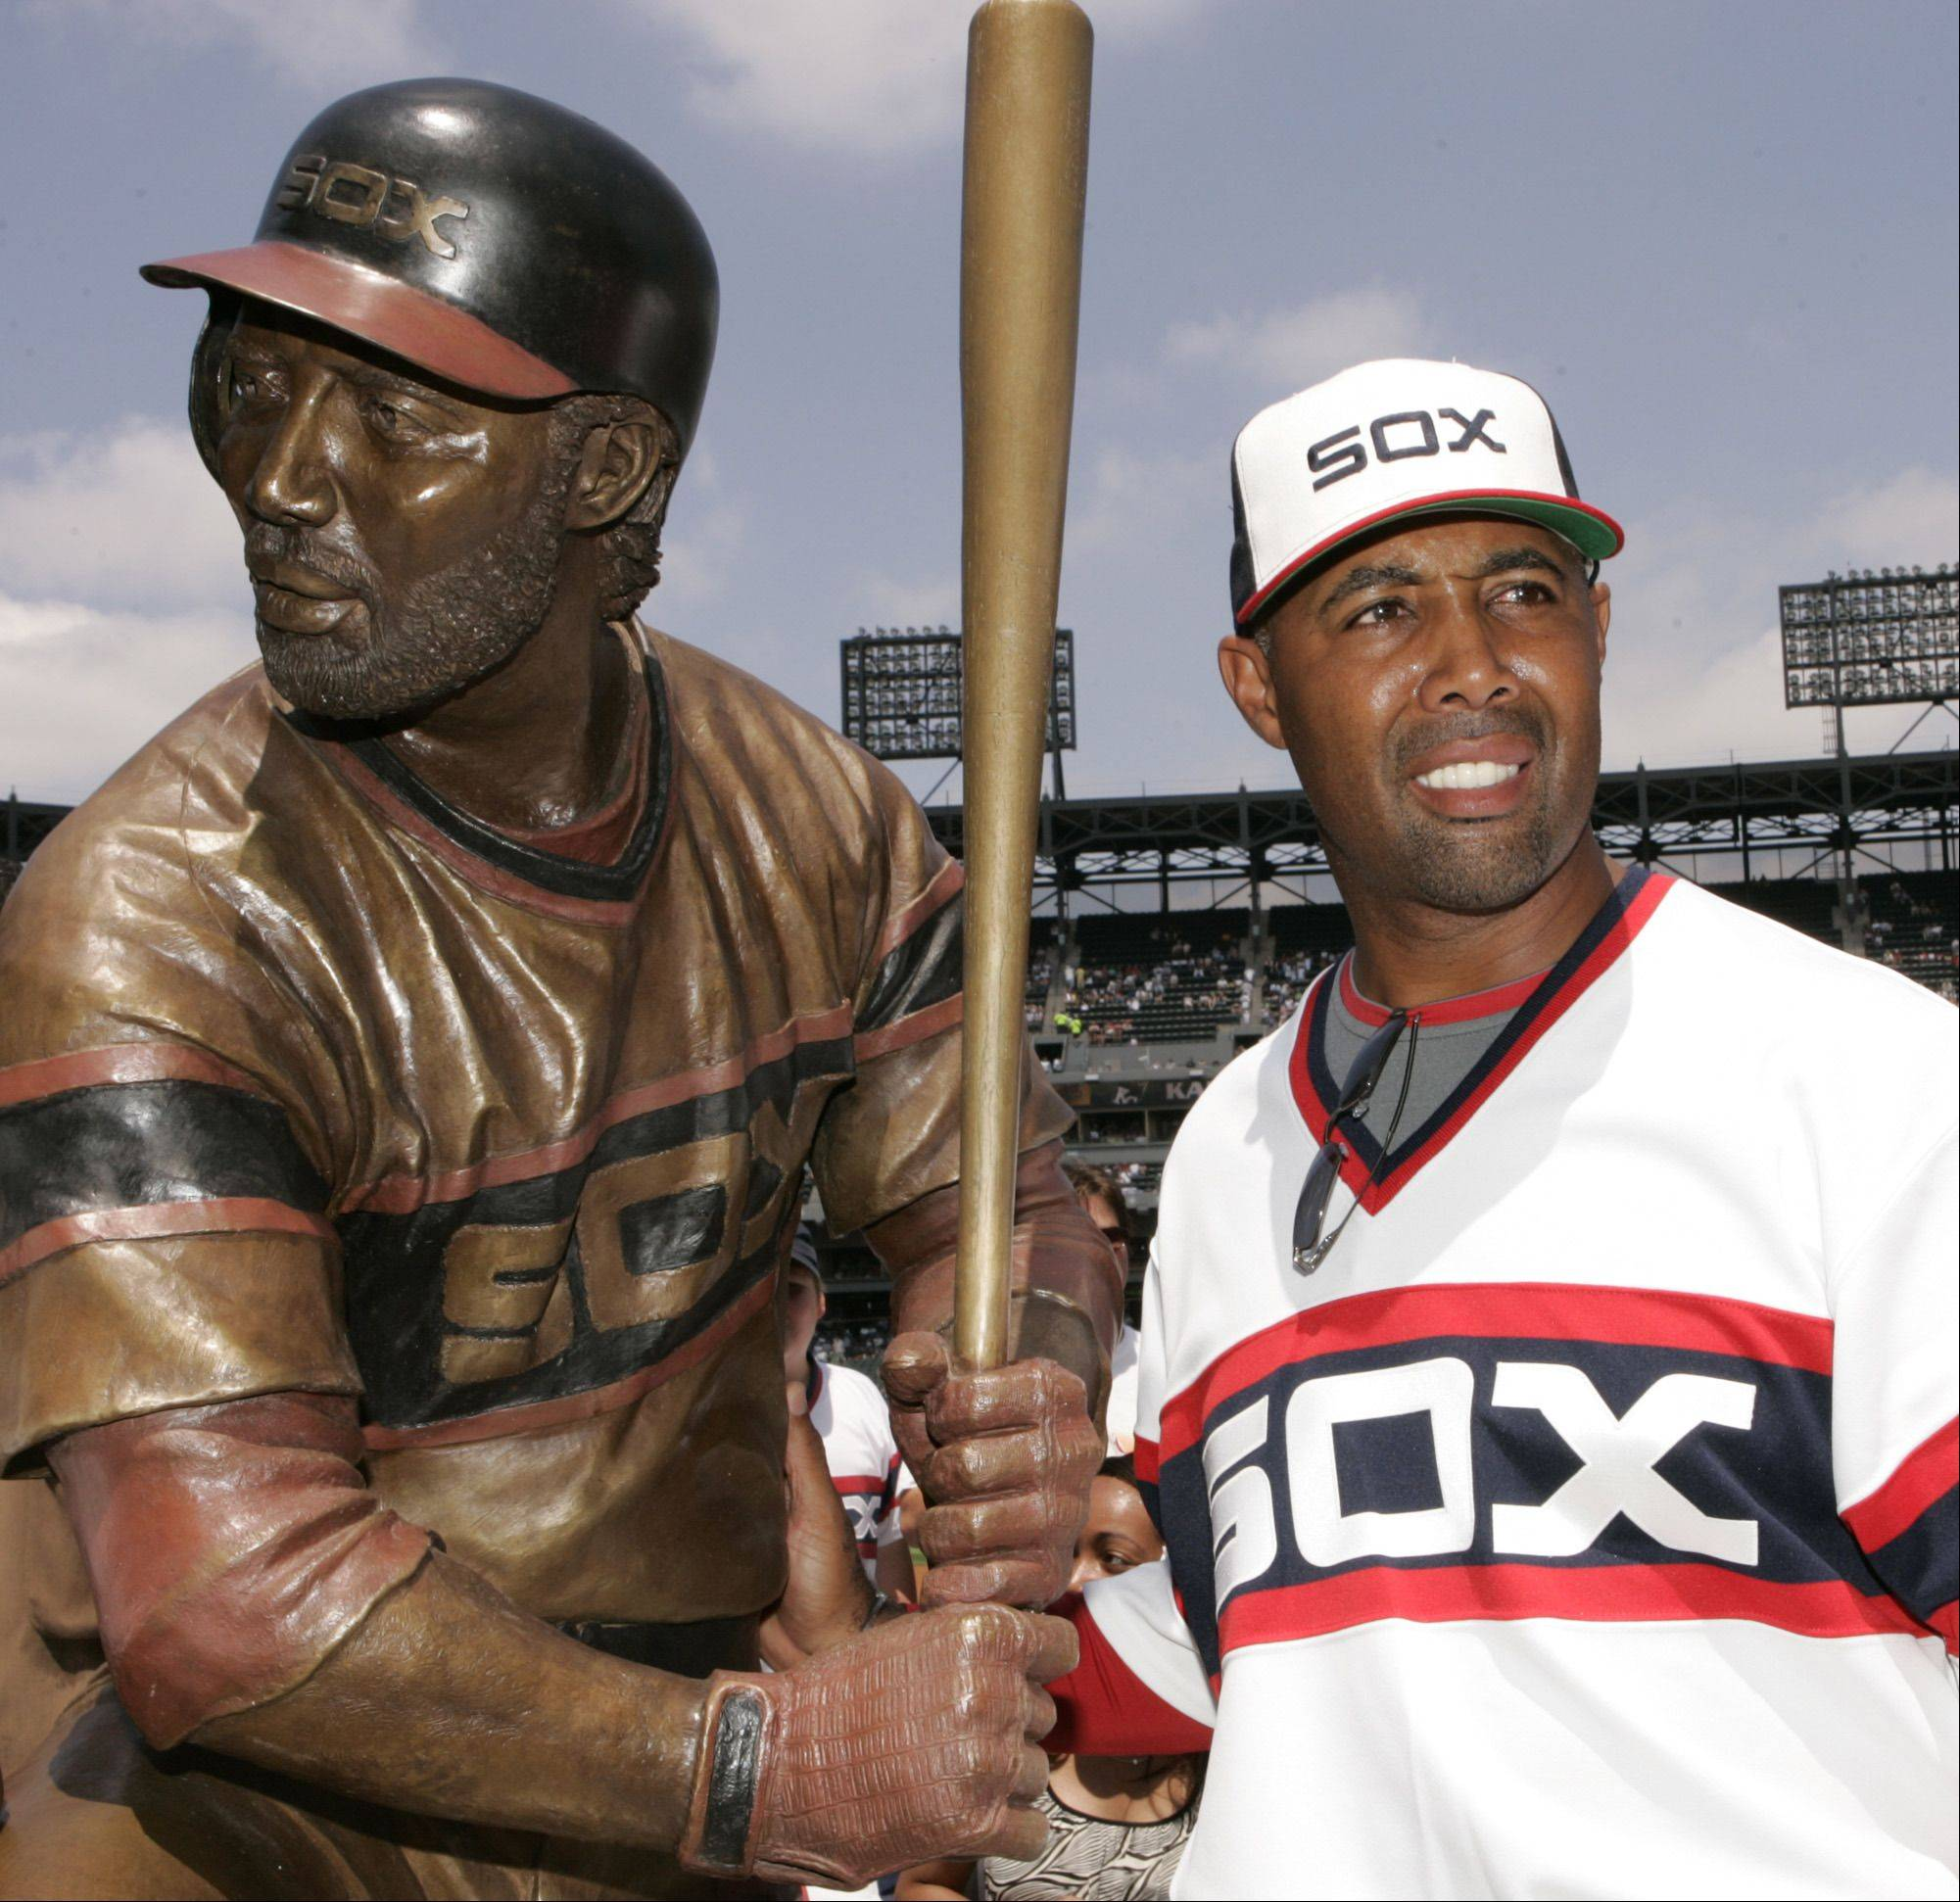 Harold Baines extended his career by 12 years thanks to the designated hitter rule that was adopted by the American League in 1973.